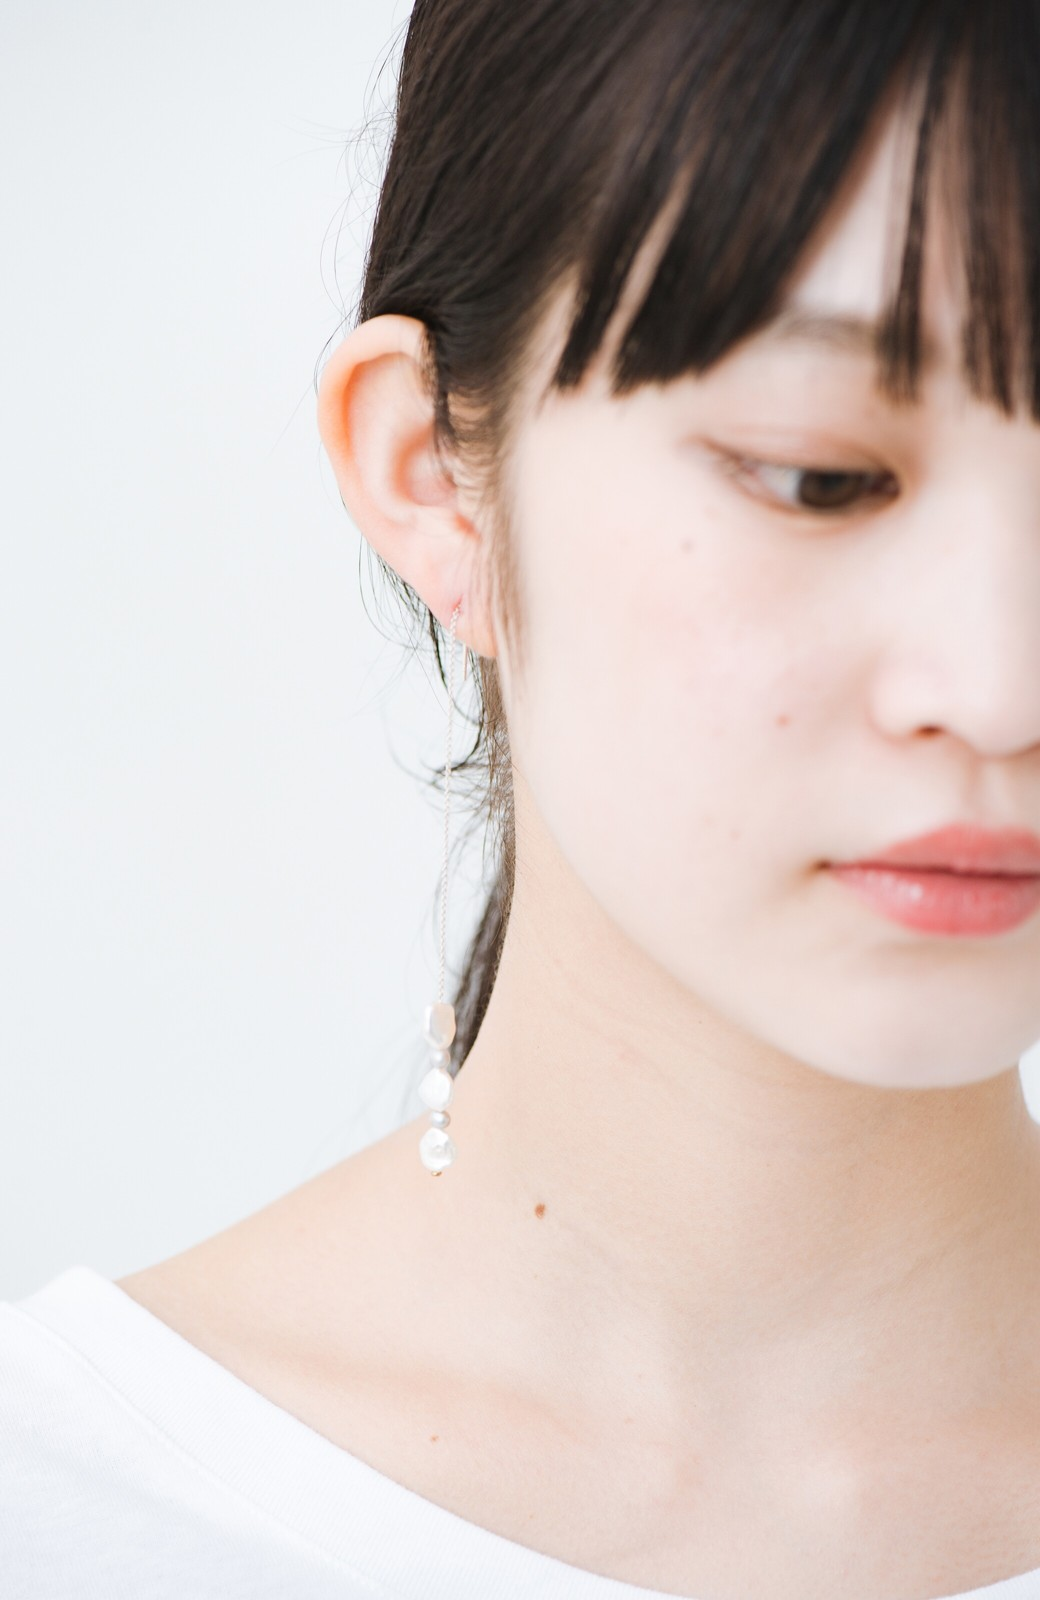 haco! 連なるチェーン&淡水パールがきれいなピアス ines by ciika <グレー>の商品写真5